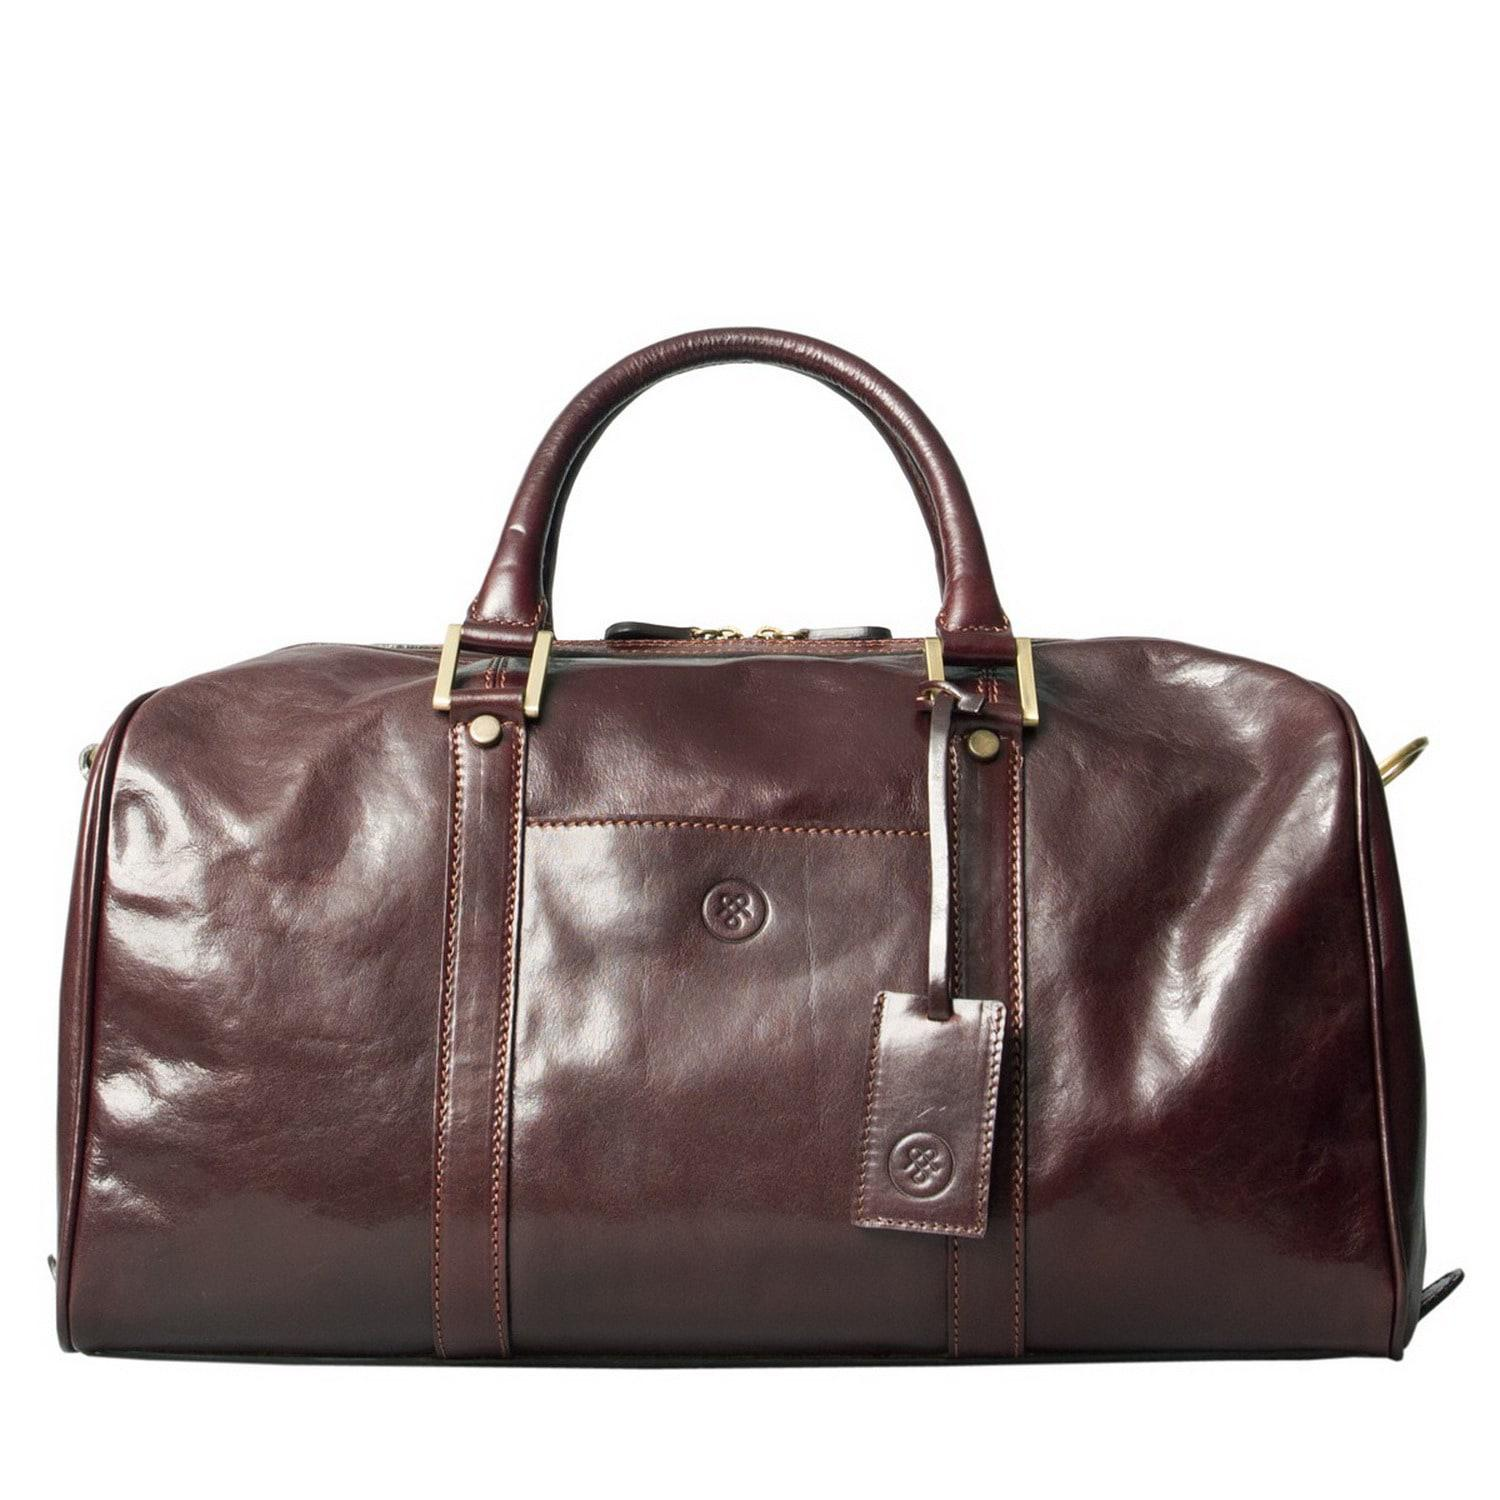 lyst maxwell scott bags luxury italian leather small travel bag fleros dark chocolate brown in. Black Bedroom Furniture Sets. Home Design Ideas